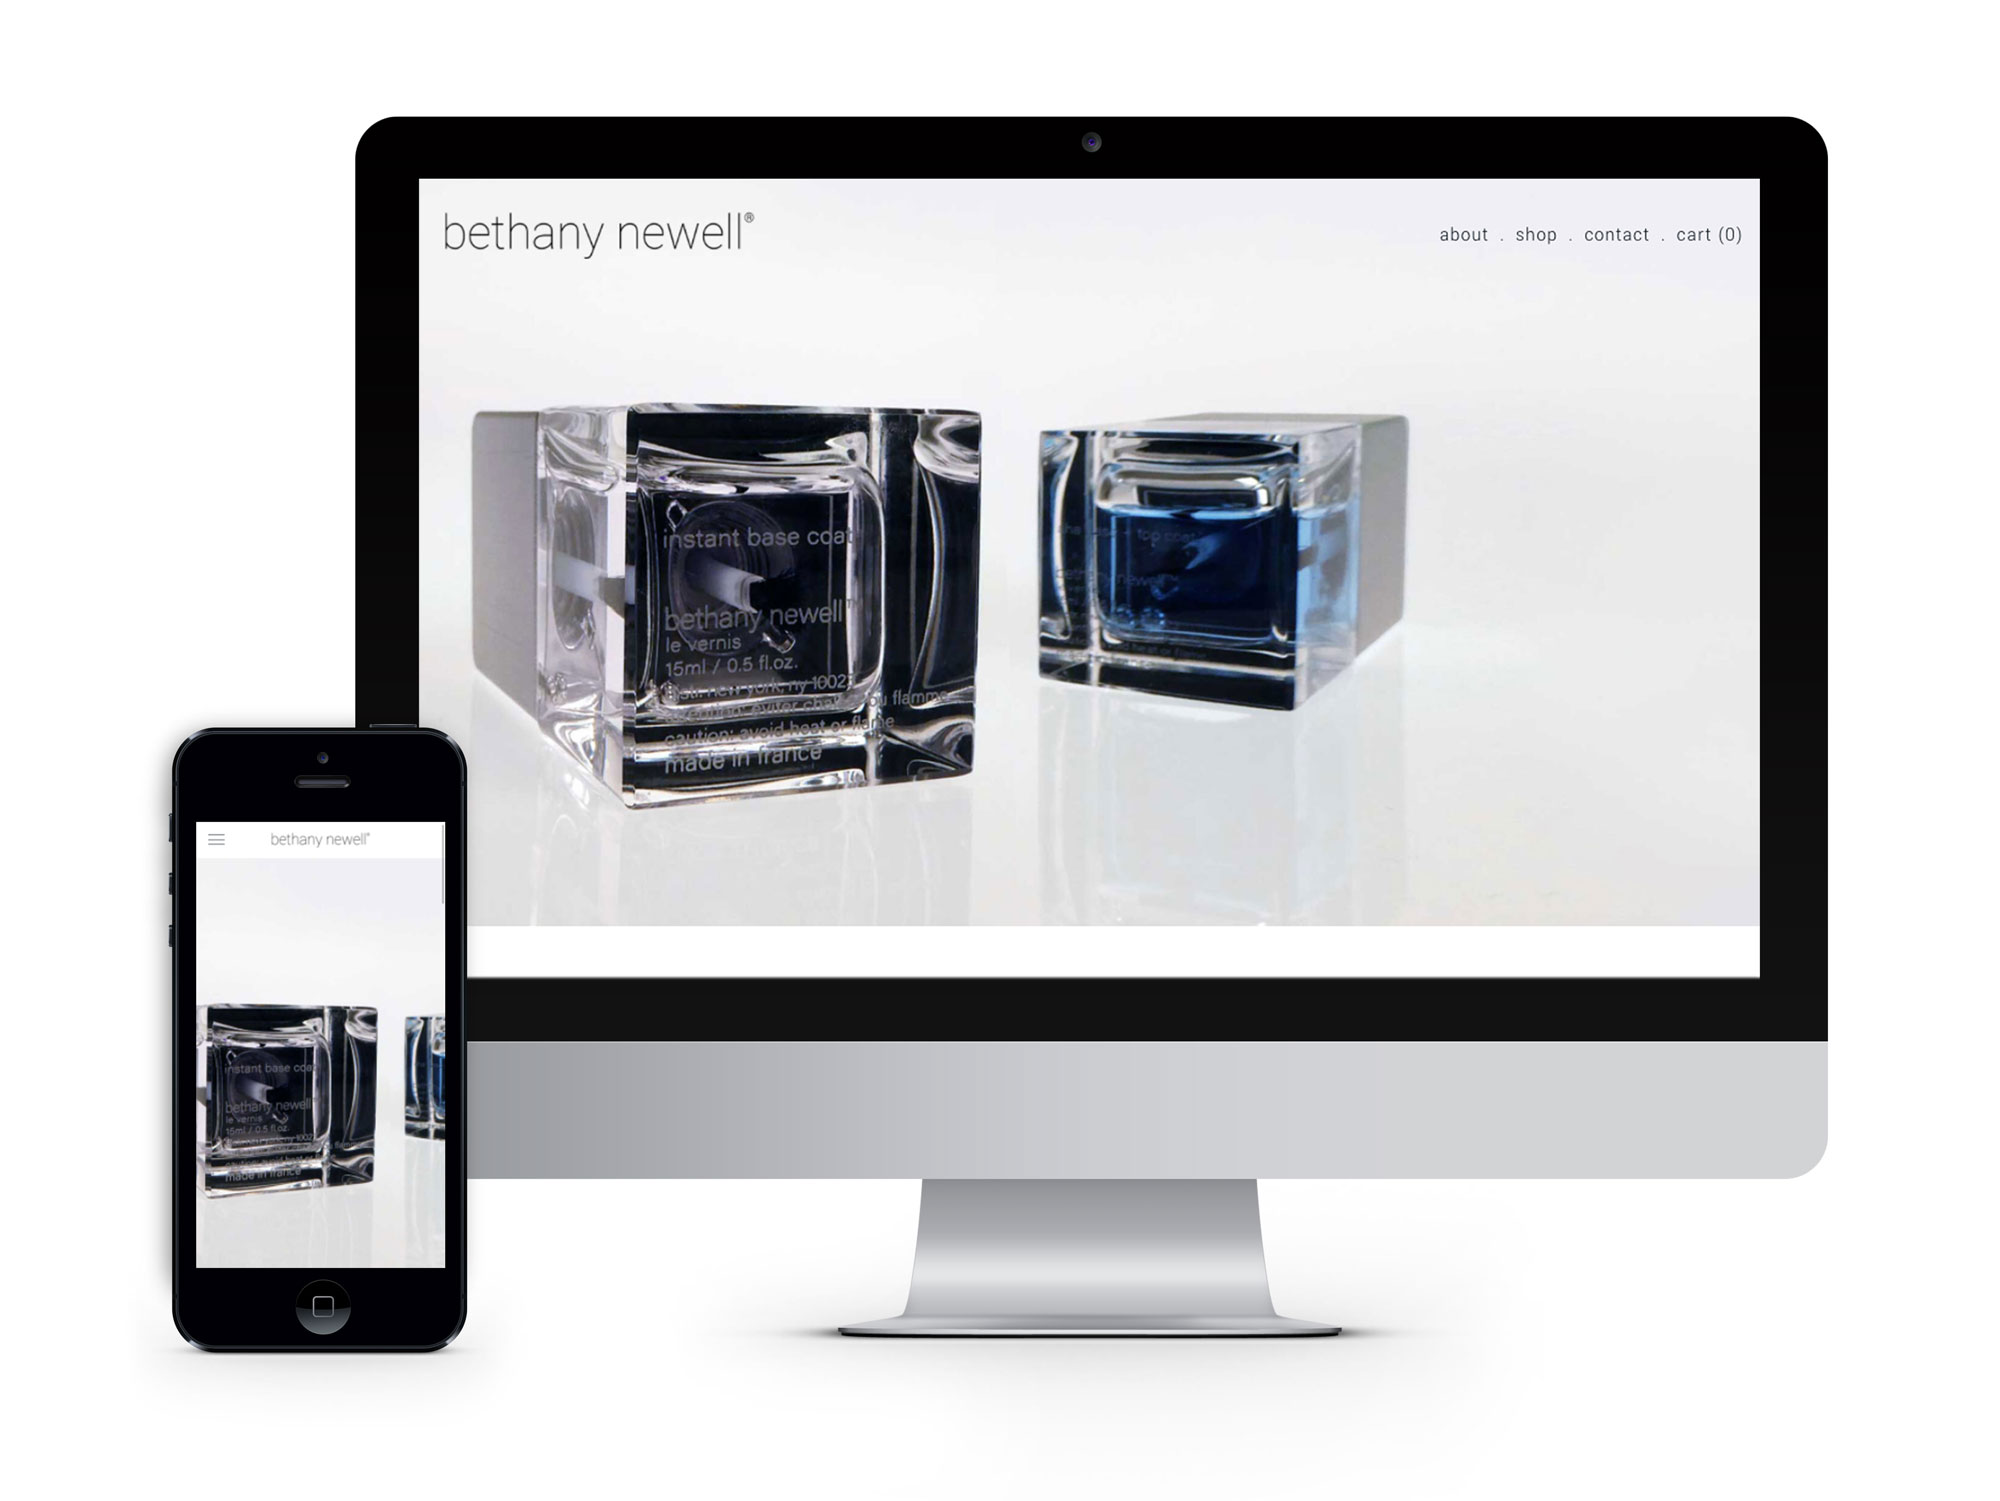 The Bethany Newell website brand communication and visuals focus on elevating the perception, building brand recognition, and driving sales on the site.